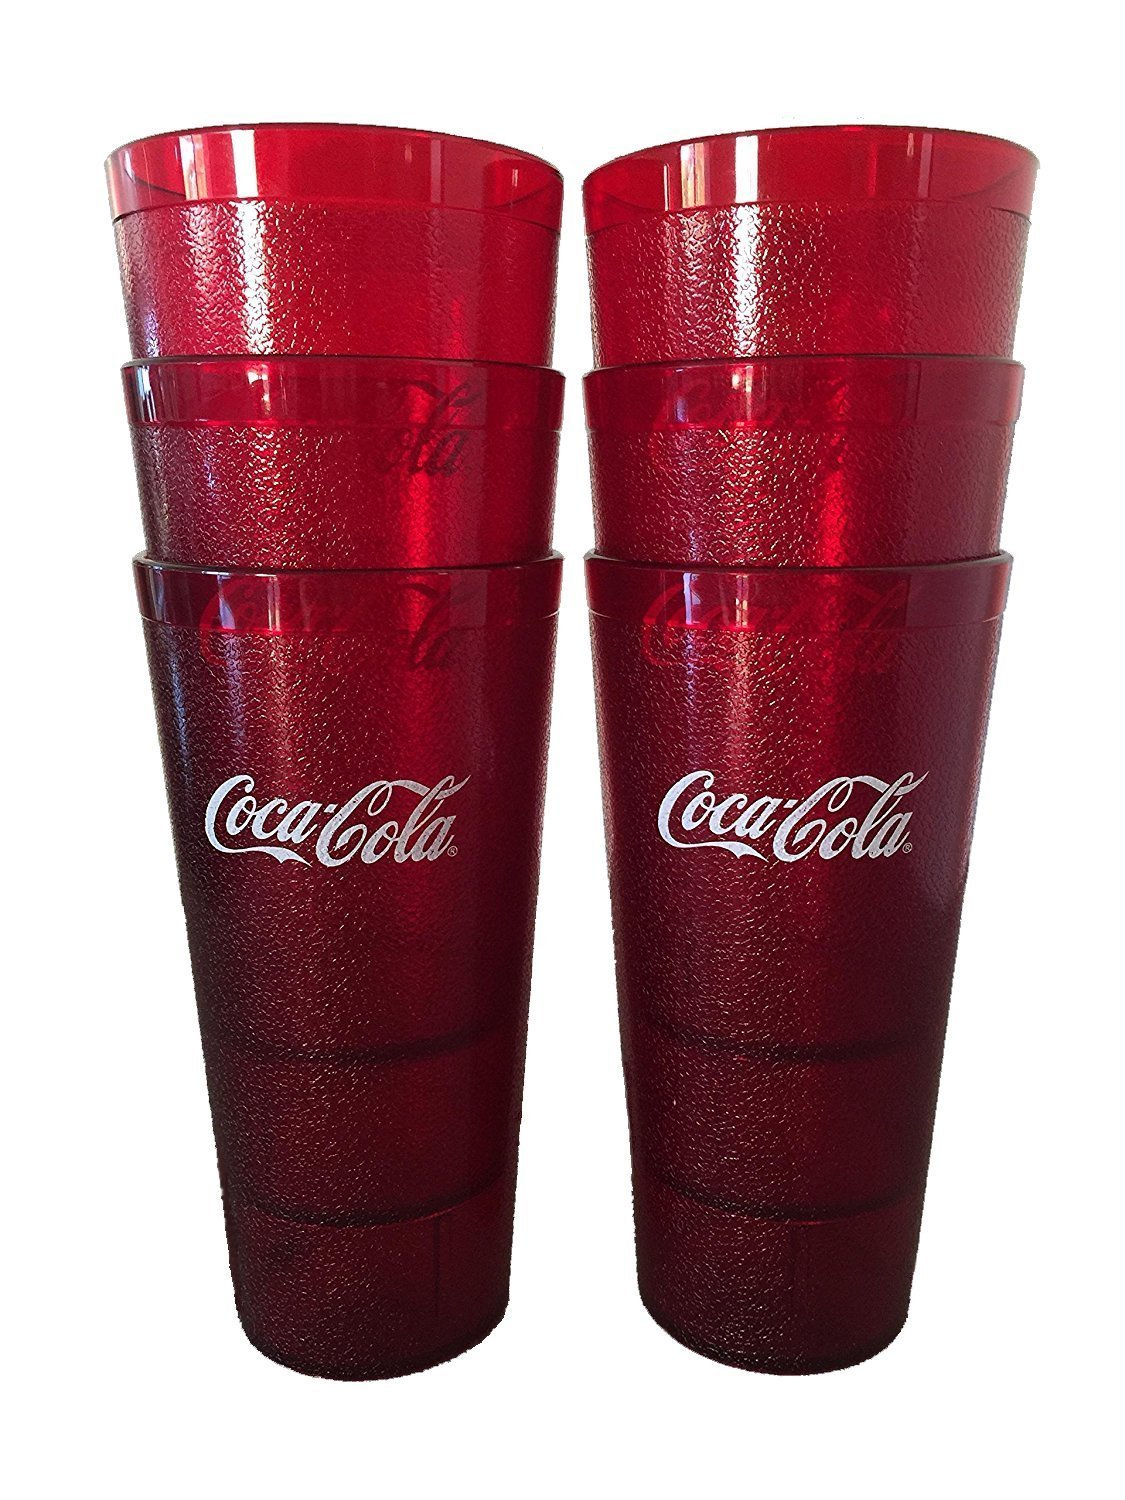 Coca-Cola Cups, Red Plastic Tumbler 24-Ounce Restaurant Grade, Carlisle, Set of 6